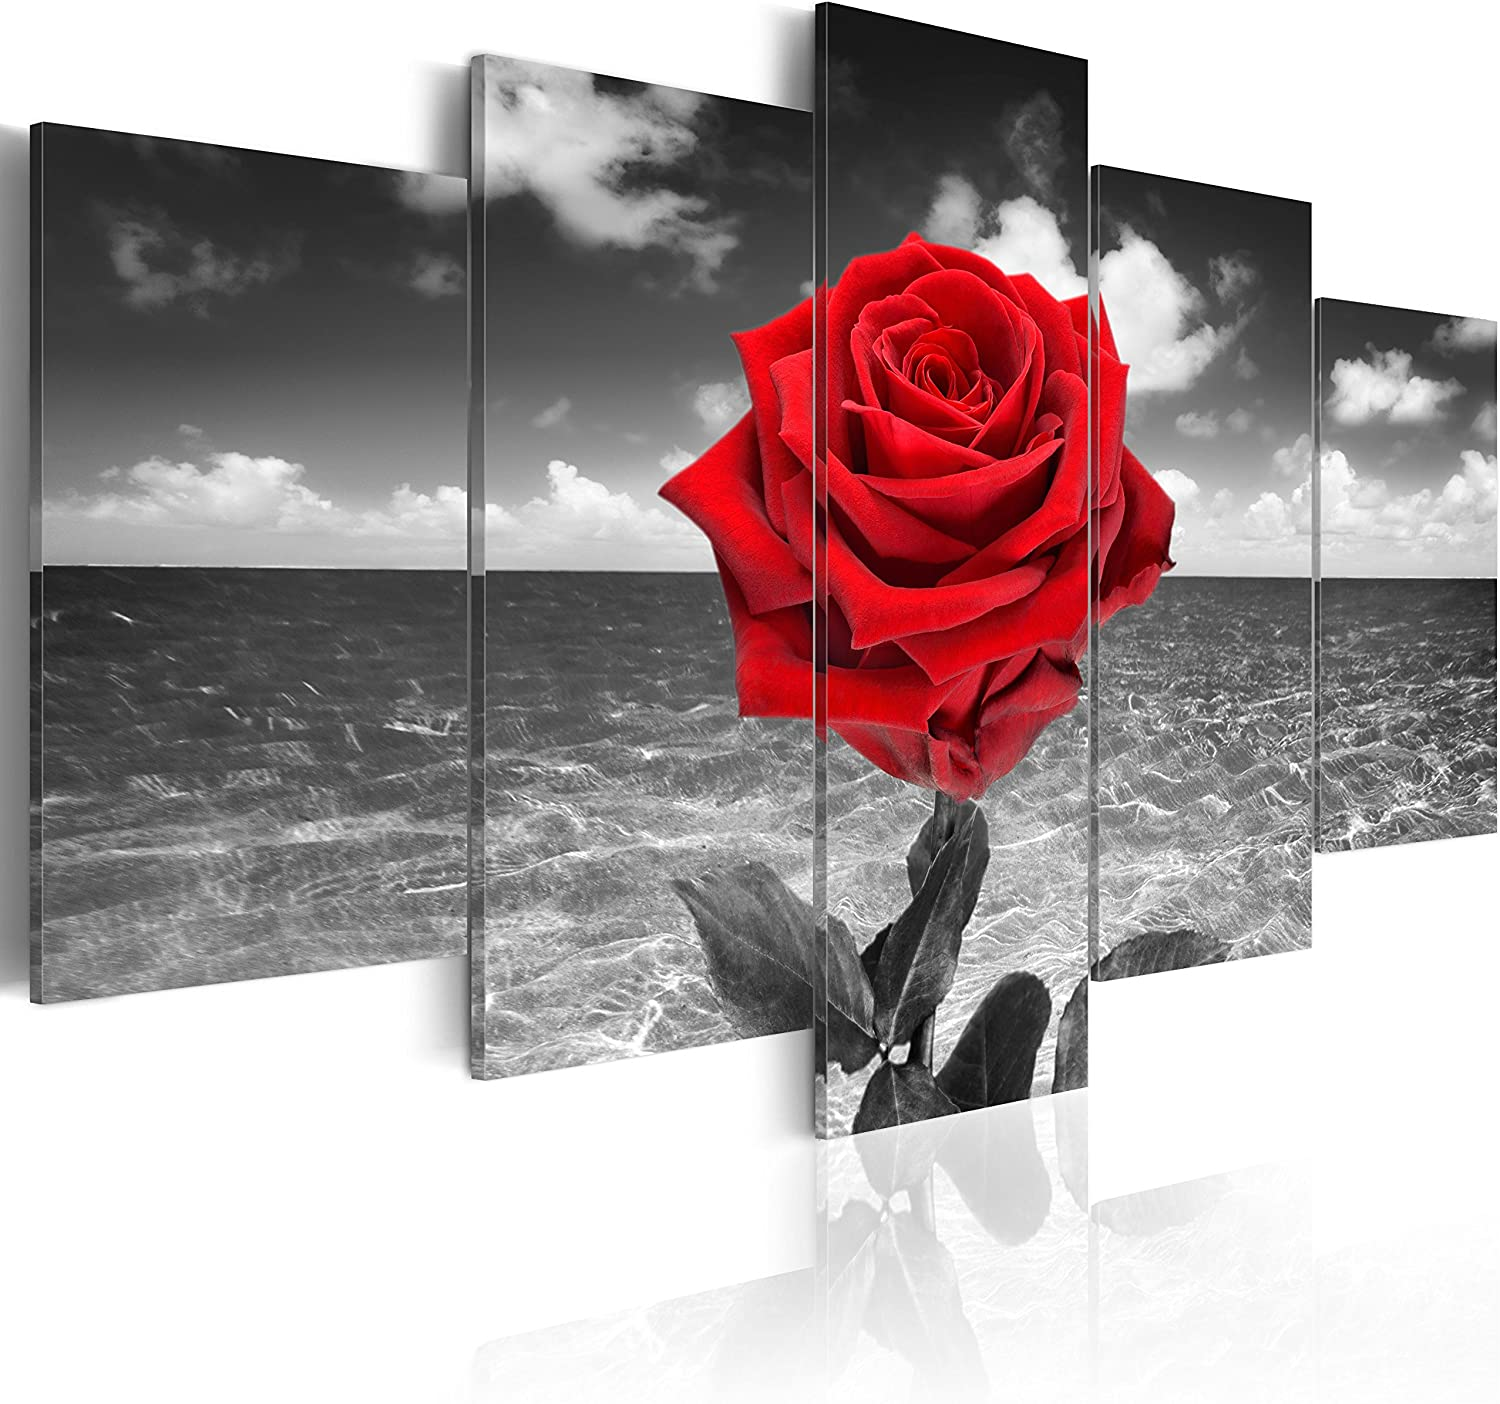 "artgeist Canvas Wall Art Print Flowers Roses Rose 200x100 cm / 78.74""x39.37"" 5 pcs Home Decor Framed Stretched Picture Photo Painting Artwork Image Black White Red Nature 020110-132"